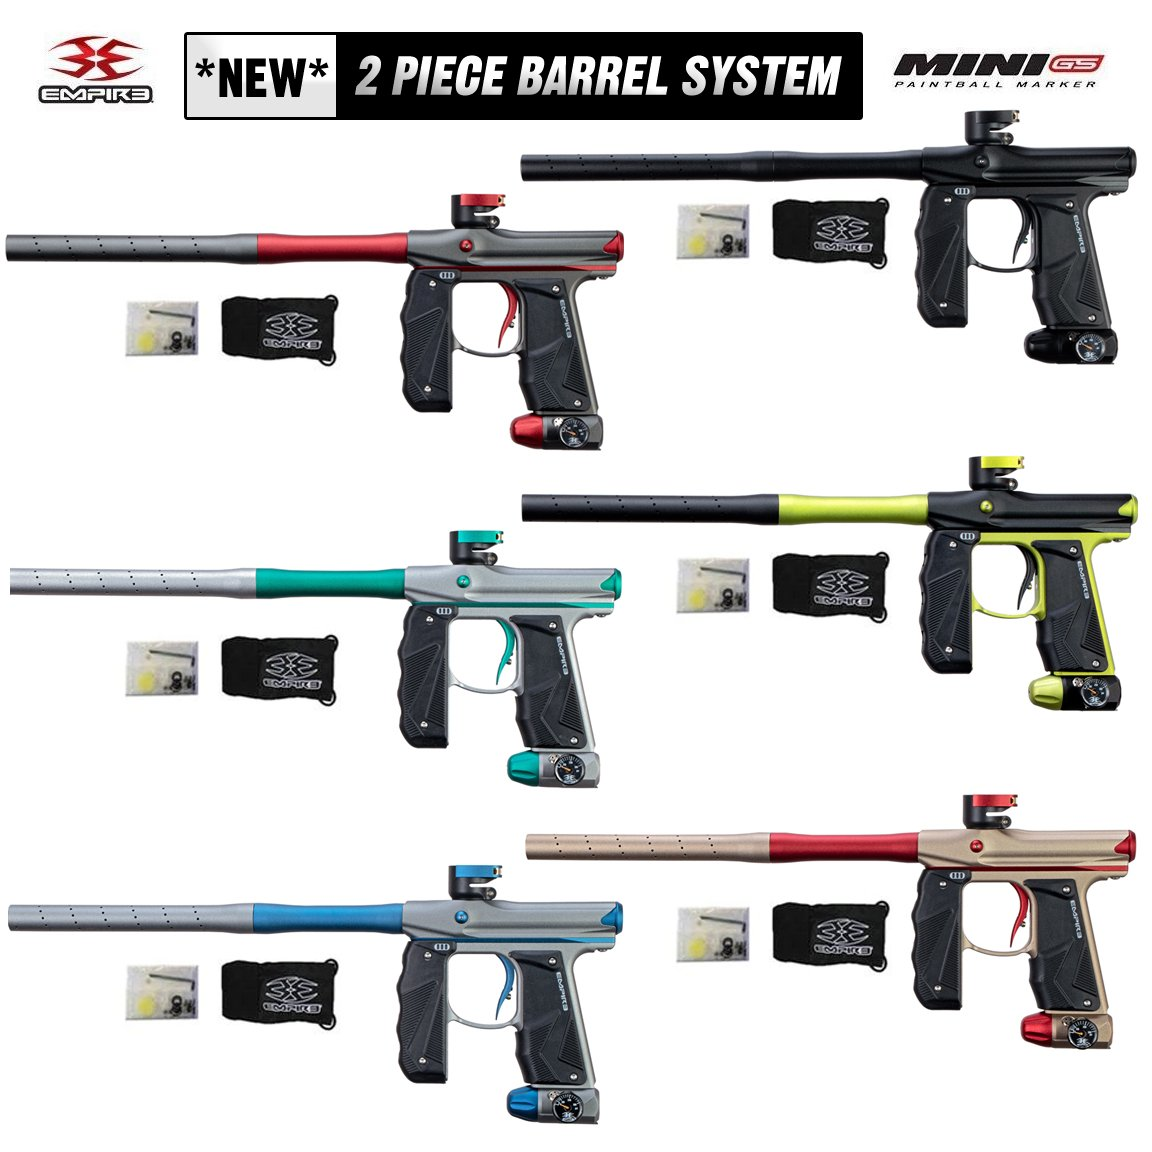 NEW Empire MINI GS 2-Piece Barrel System + 6 NEW COLORS! - PaintballDeals.com